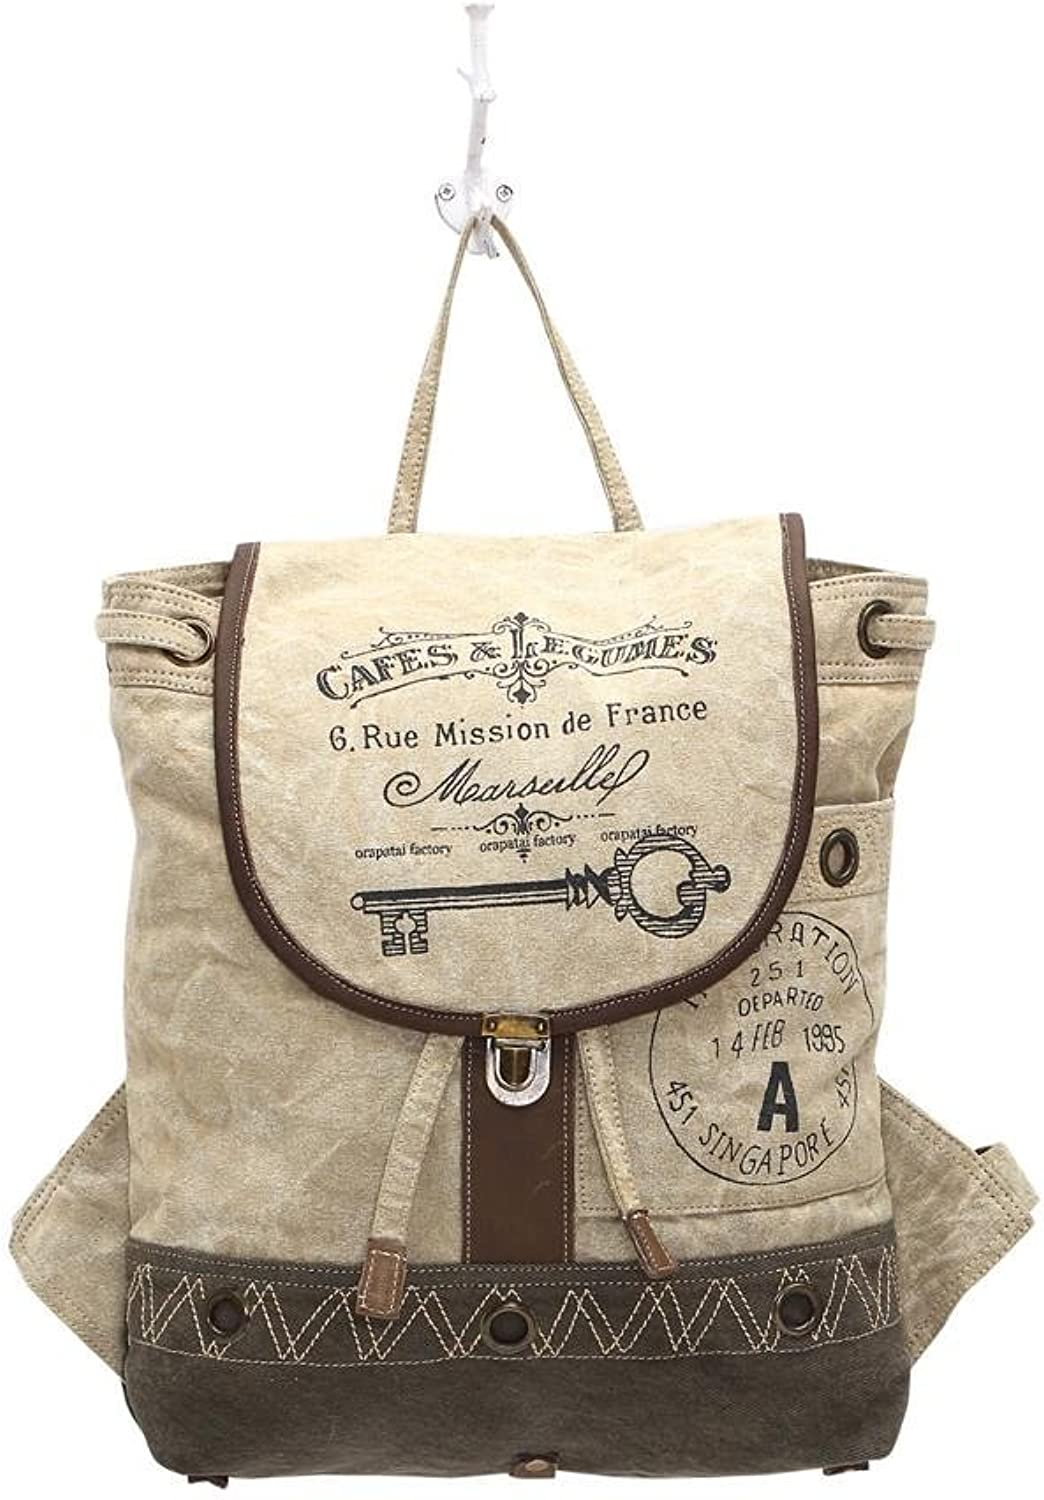 Myra Bags Cafe & Legumes Key Upcycled Canvas Backpack Bag S1003